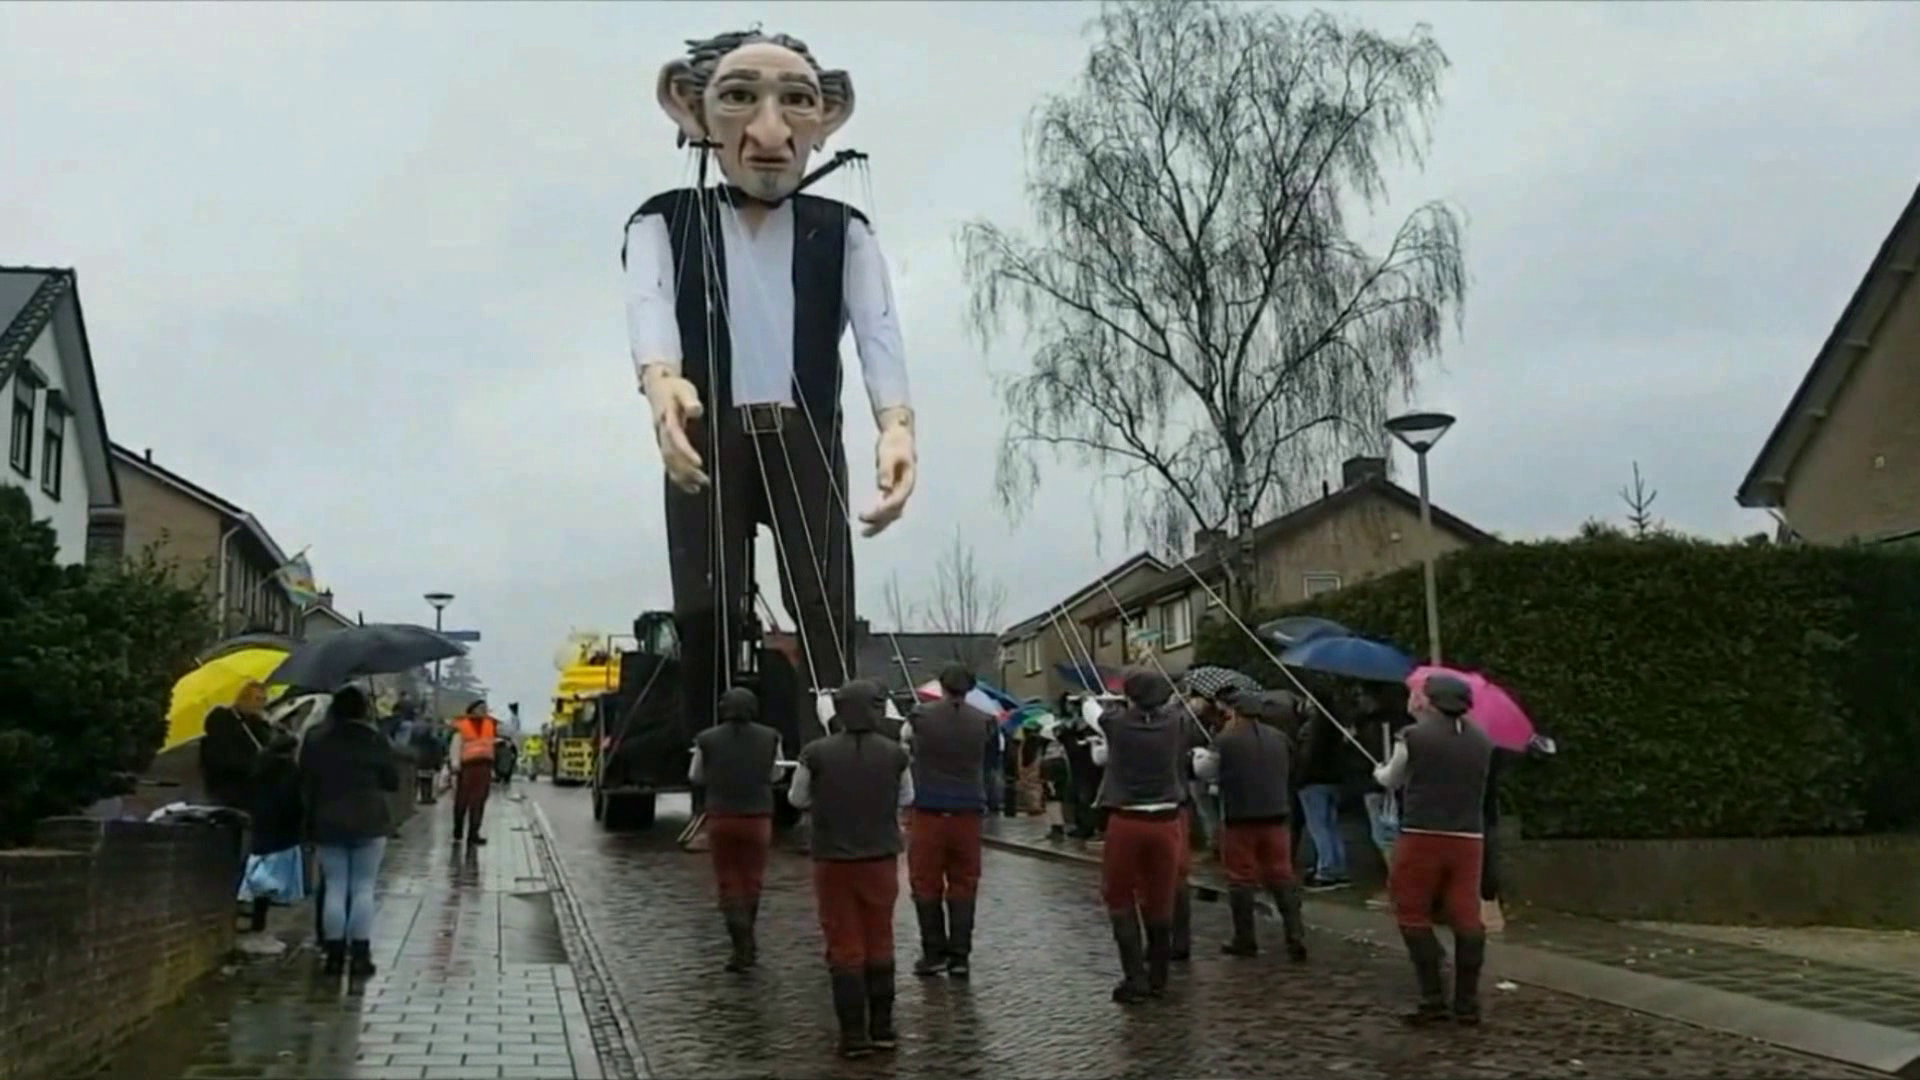 Aflevering 4 Documentaire Ut Gruusbèks Carnaval